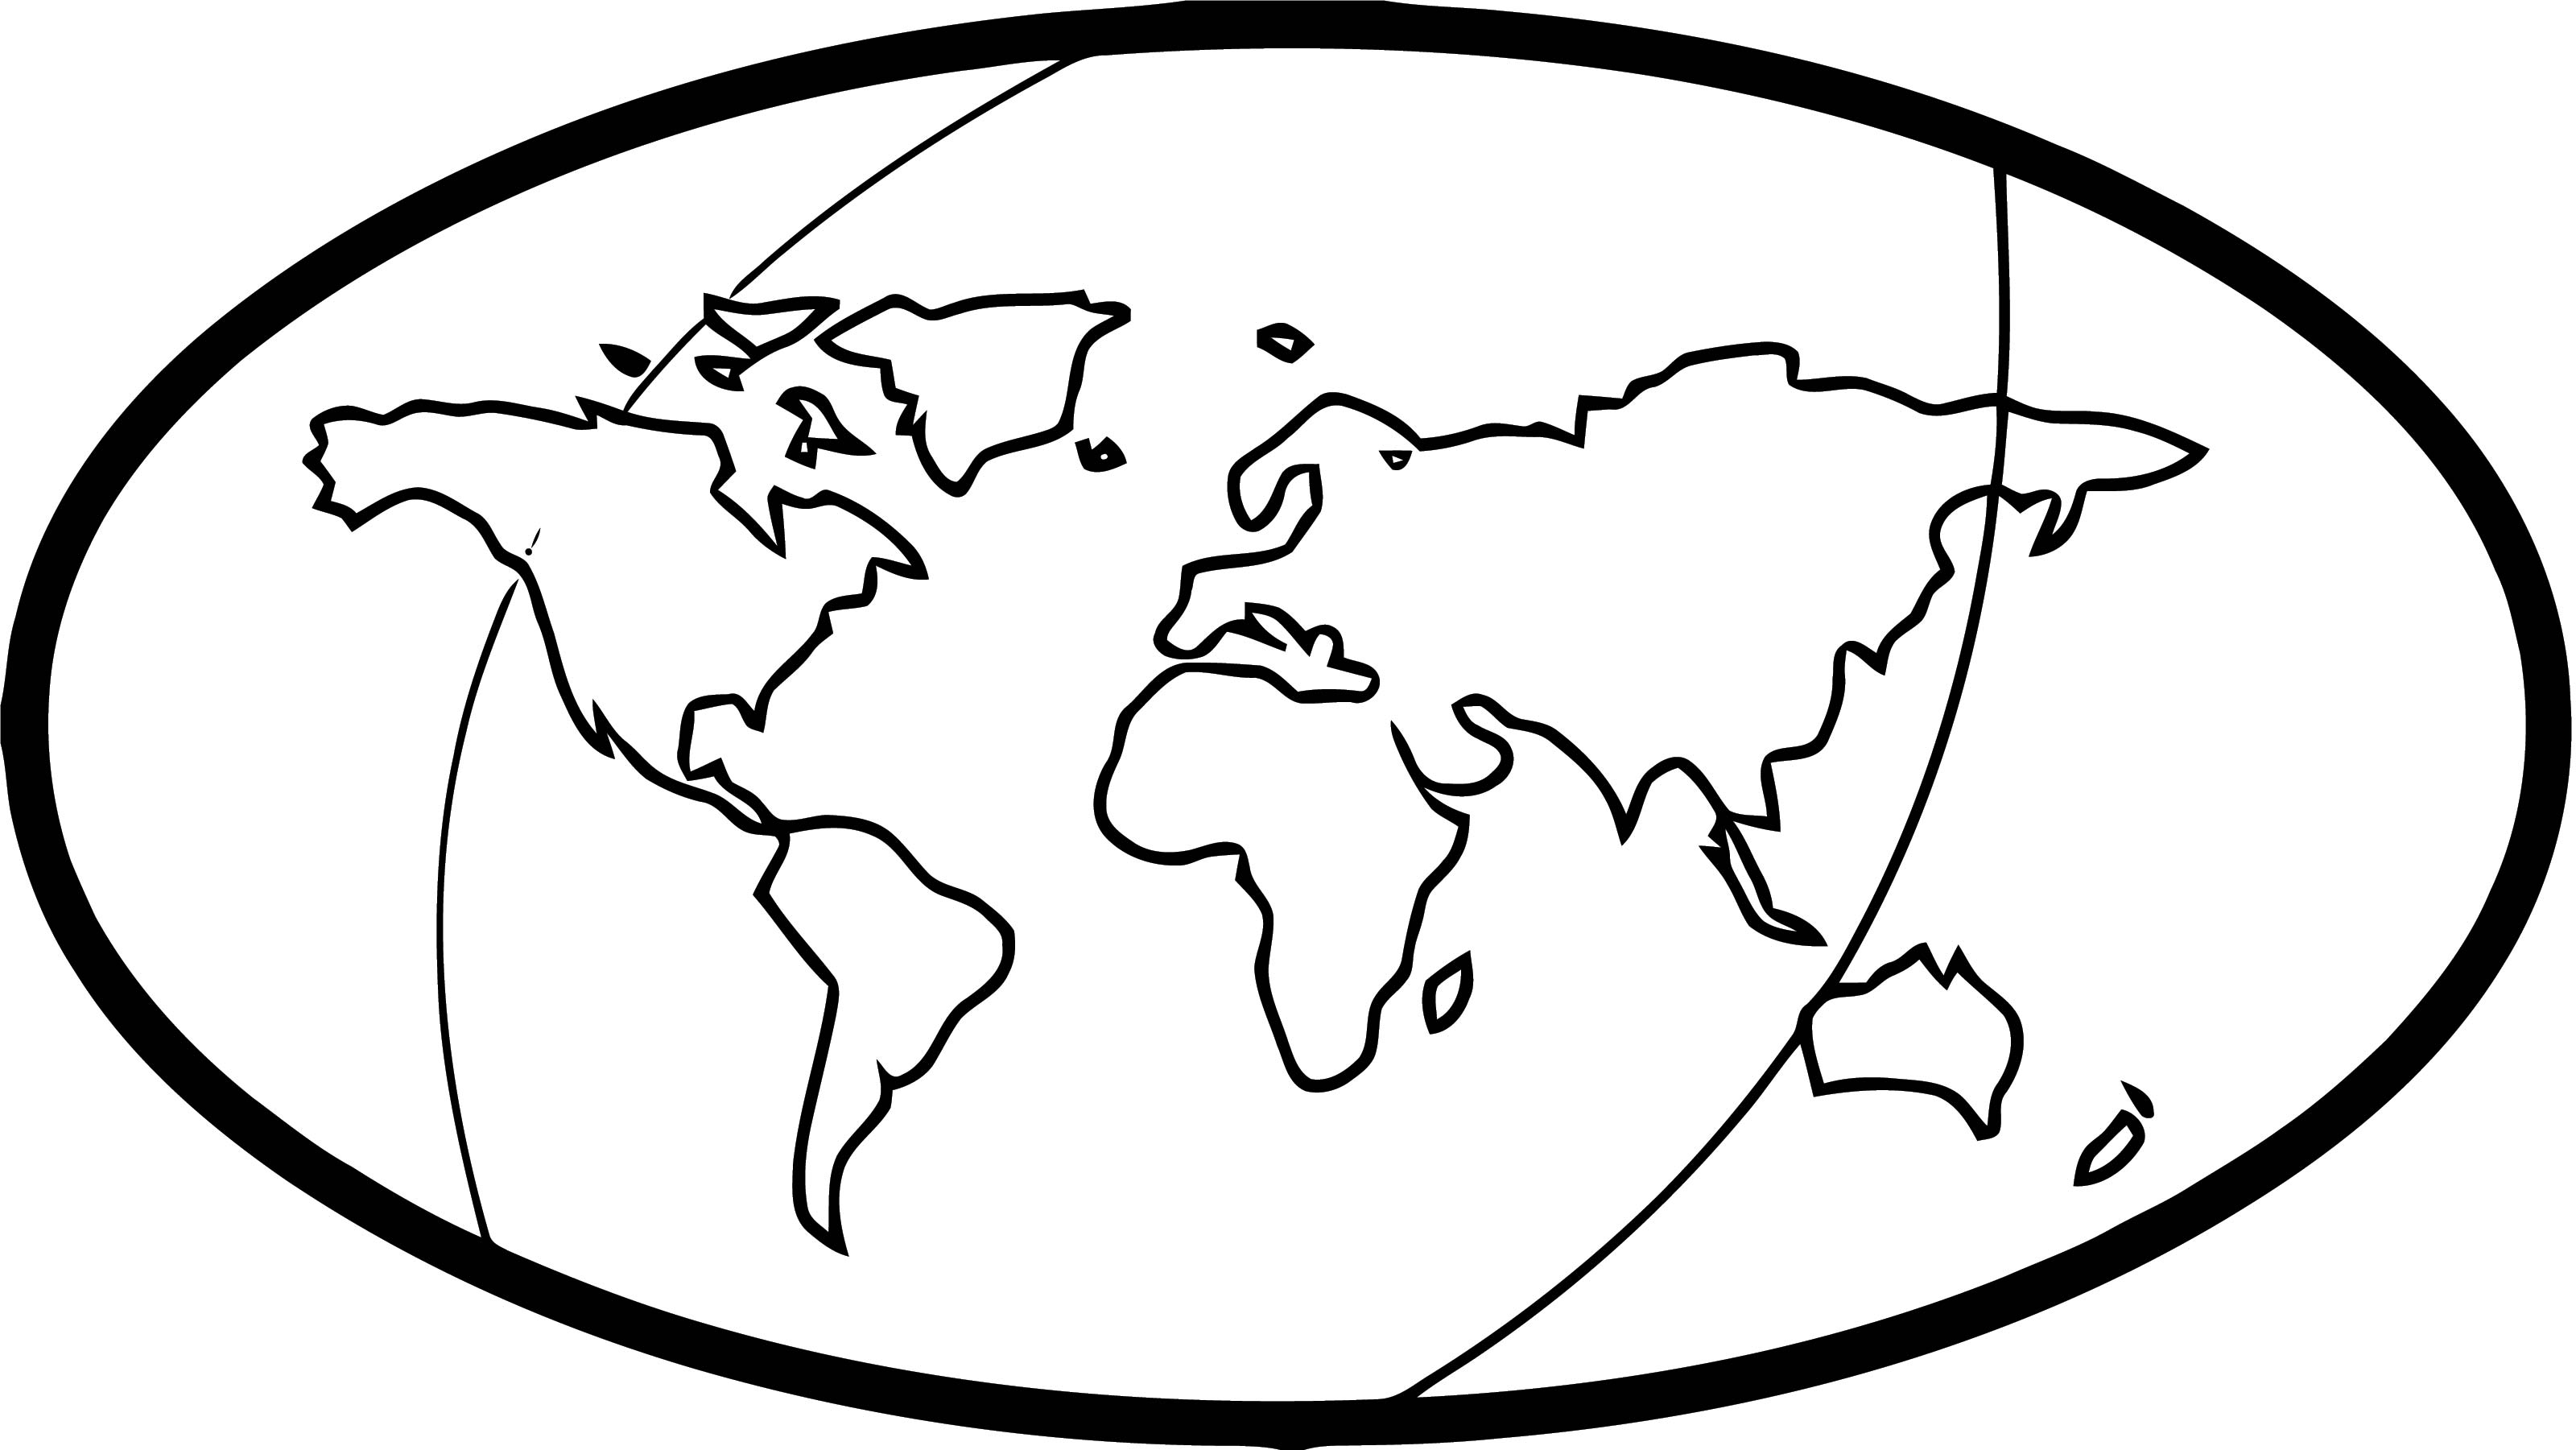 coloring page earth planet earth coloring pages at getdrawings free download coloring page earth